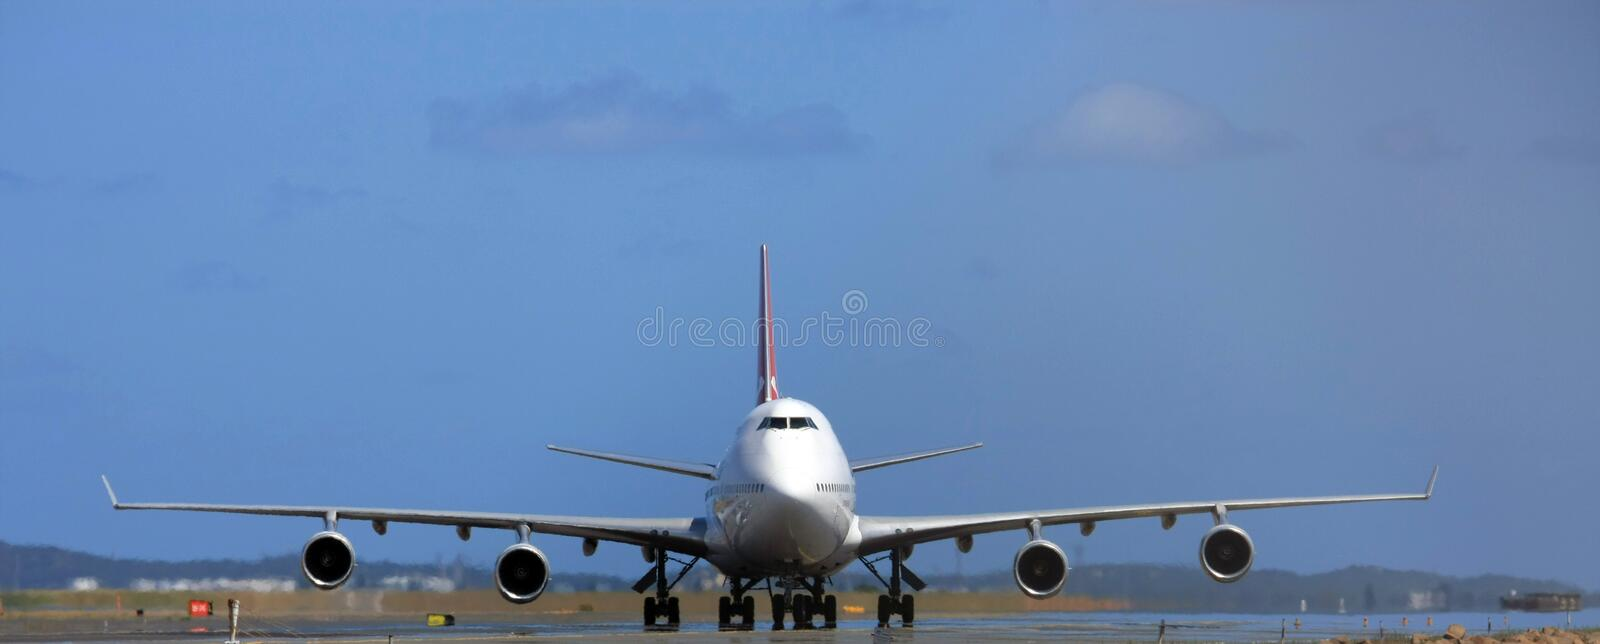 Boeing 747 jumbo jet royalty free stock photo